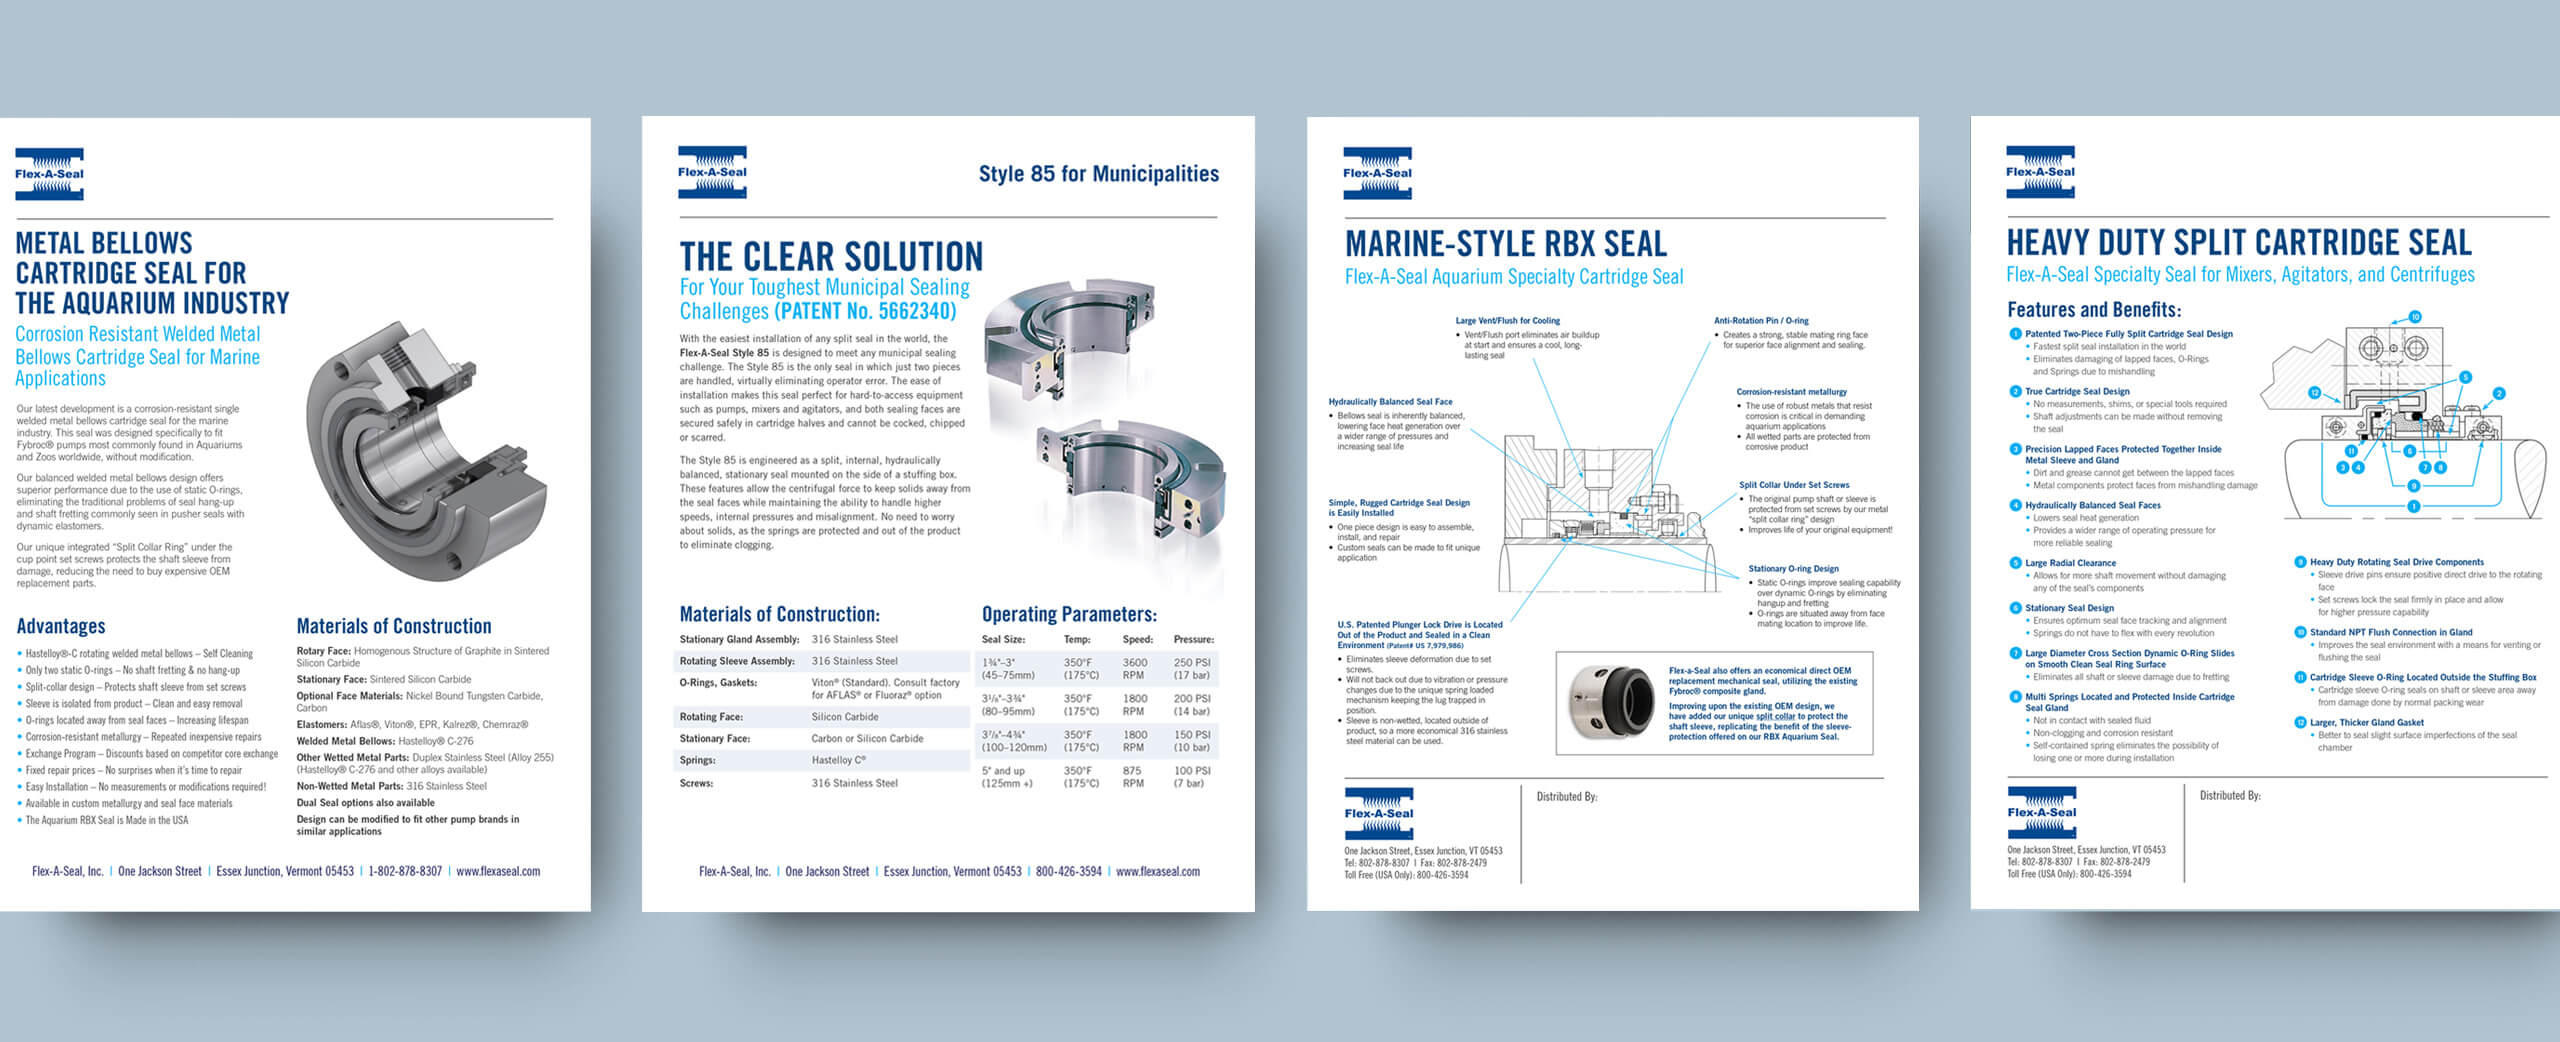 dmg-marketing-collateral-flex-a-seal-inserts